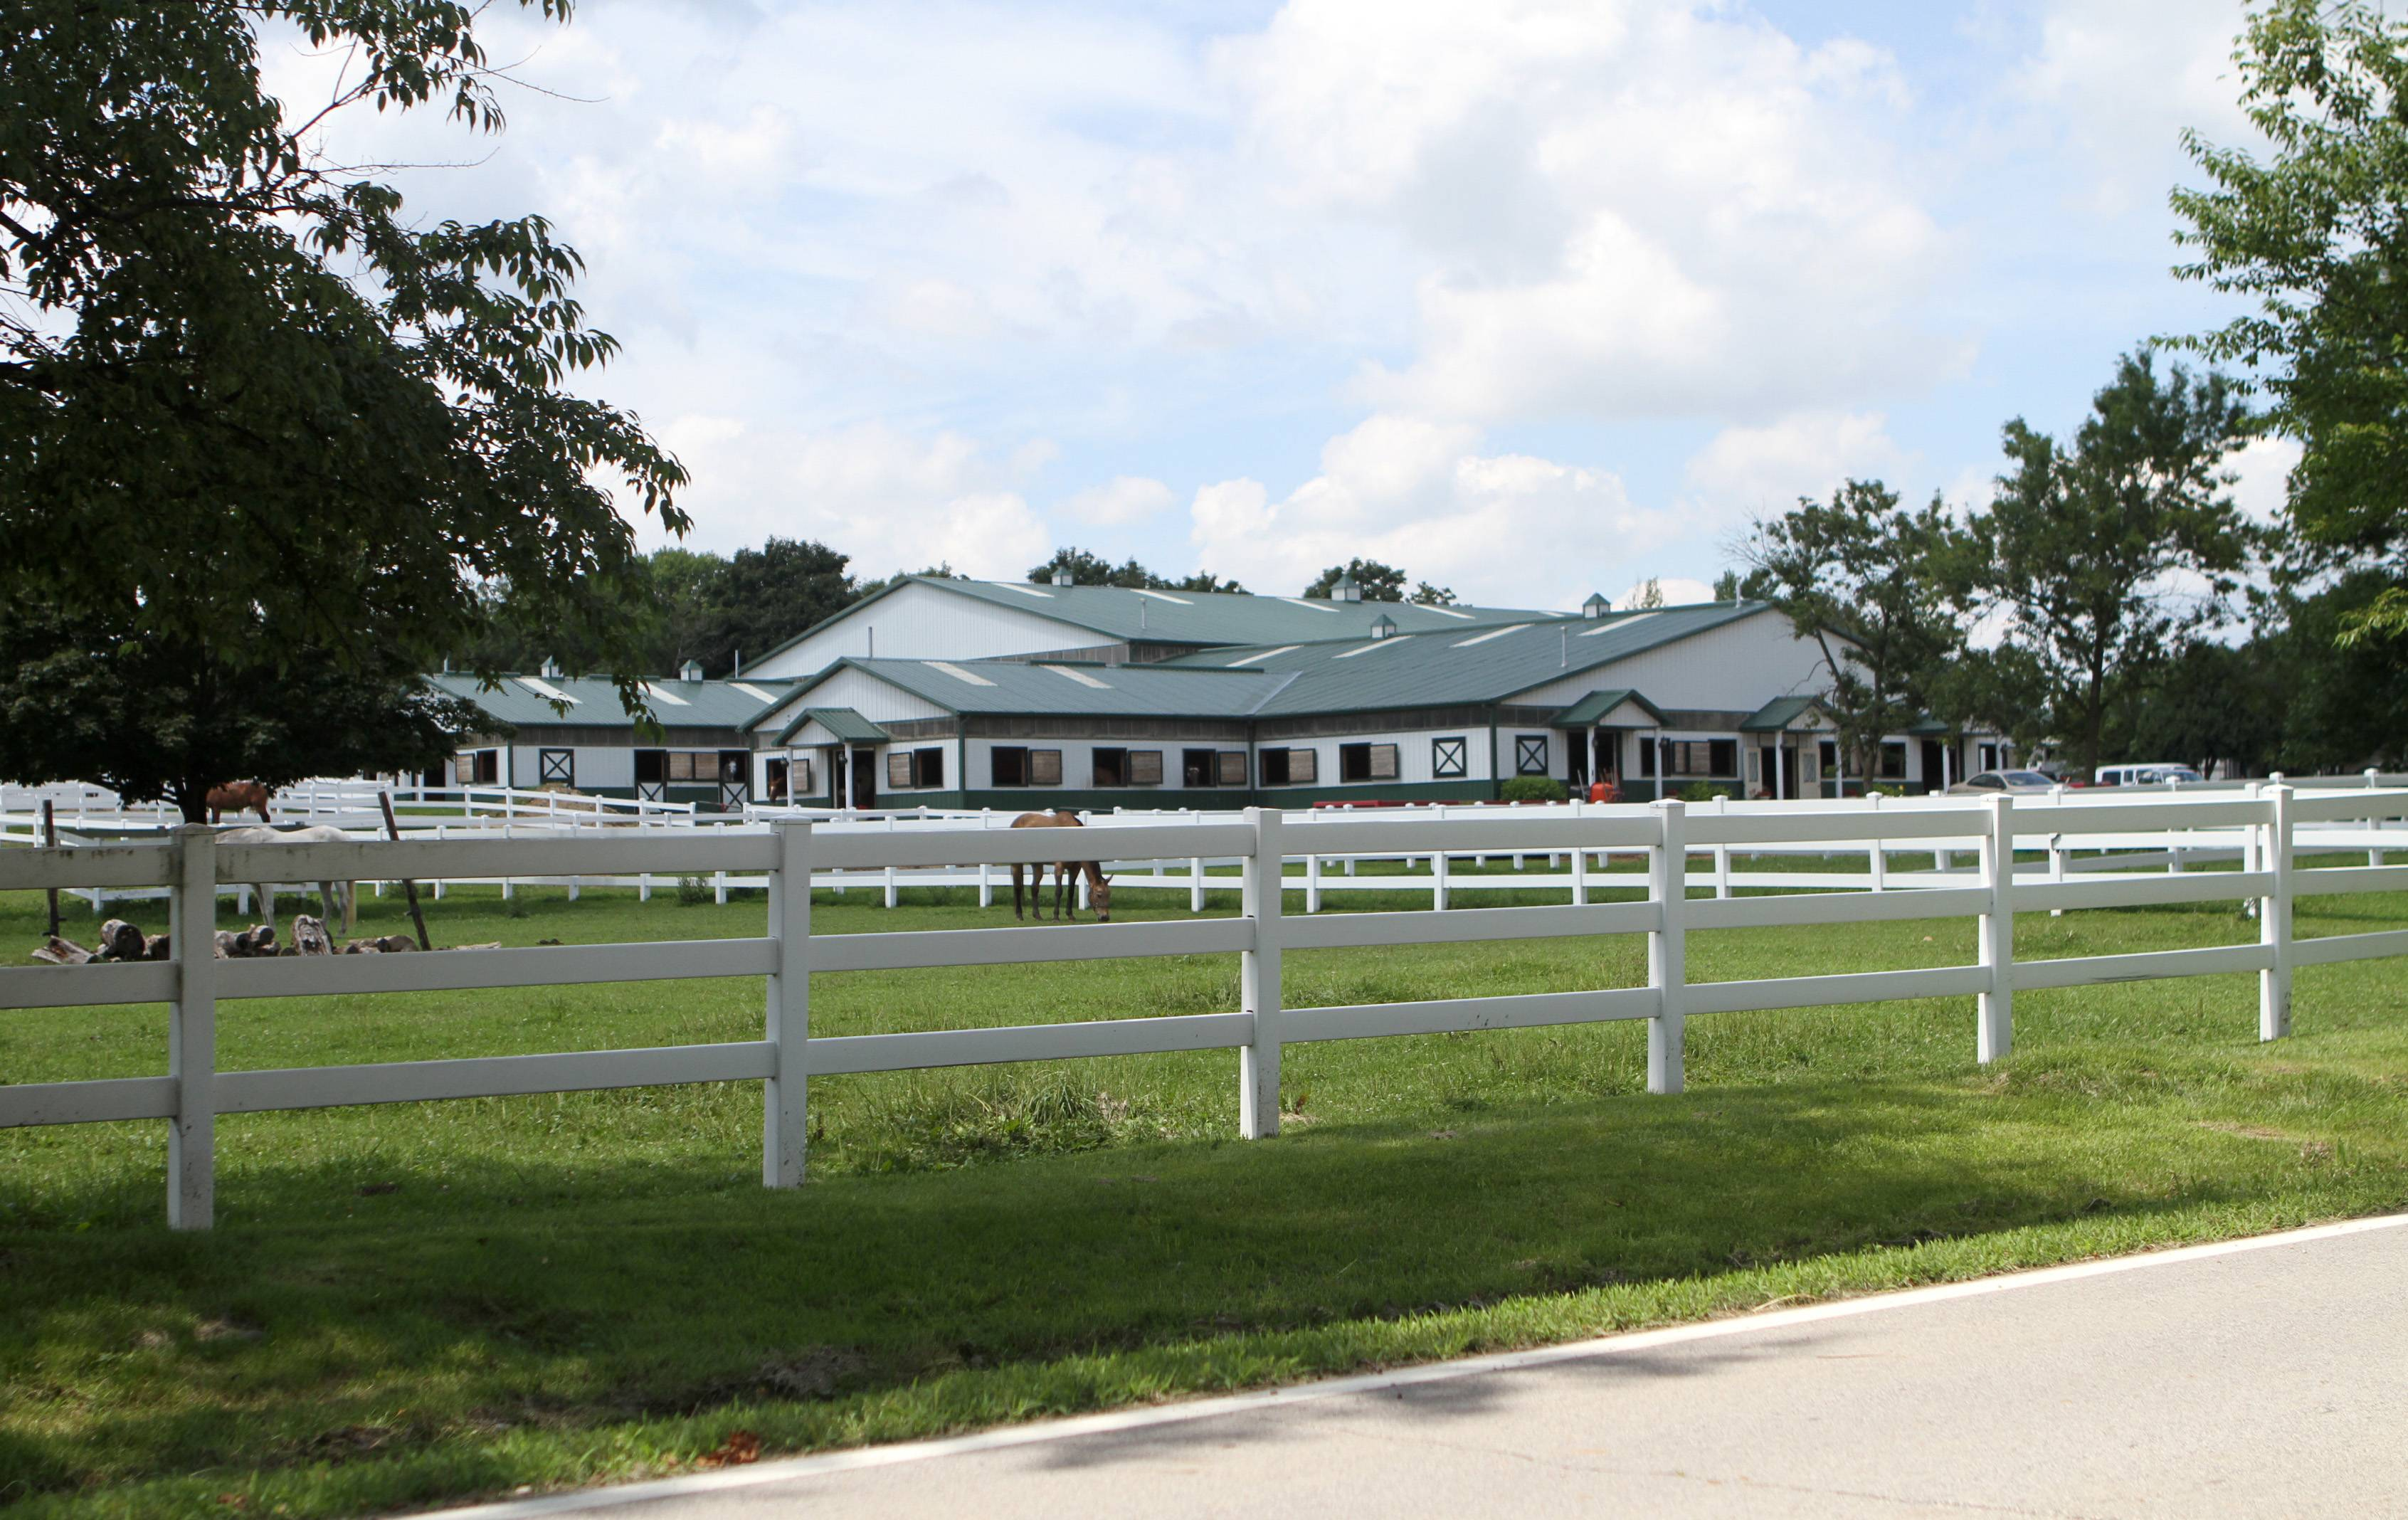 The Barrington Hills village board passed new rules this week governing how many horses commercial boarding operations are allowed. The new rules are meant to address controversies like one that arose over the boarding operation at Oakwood Farms.